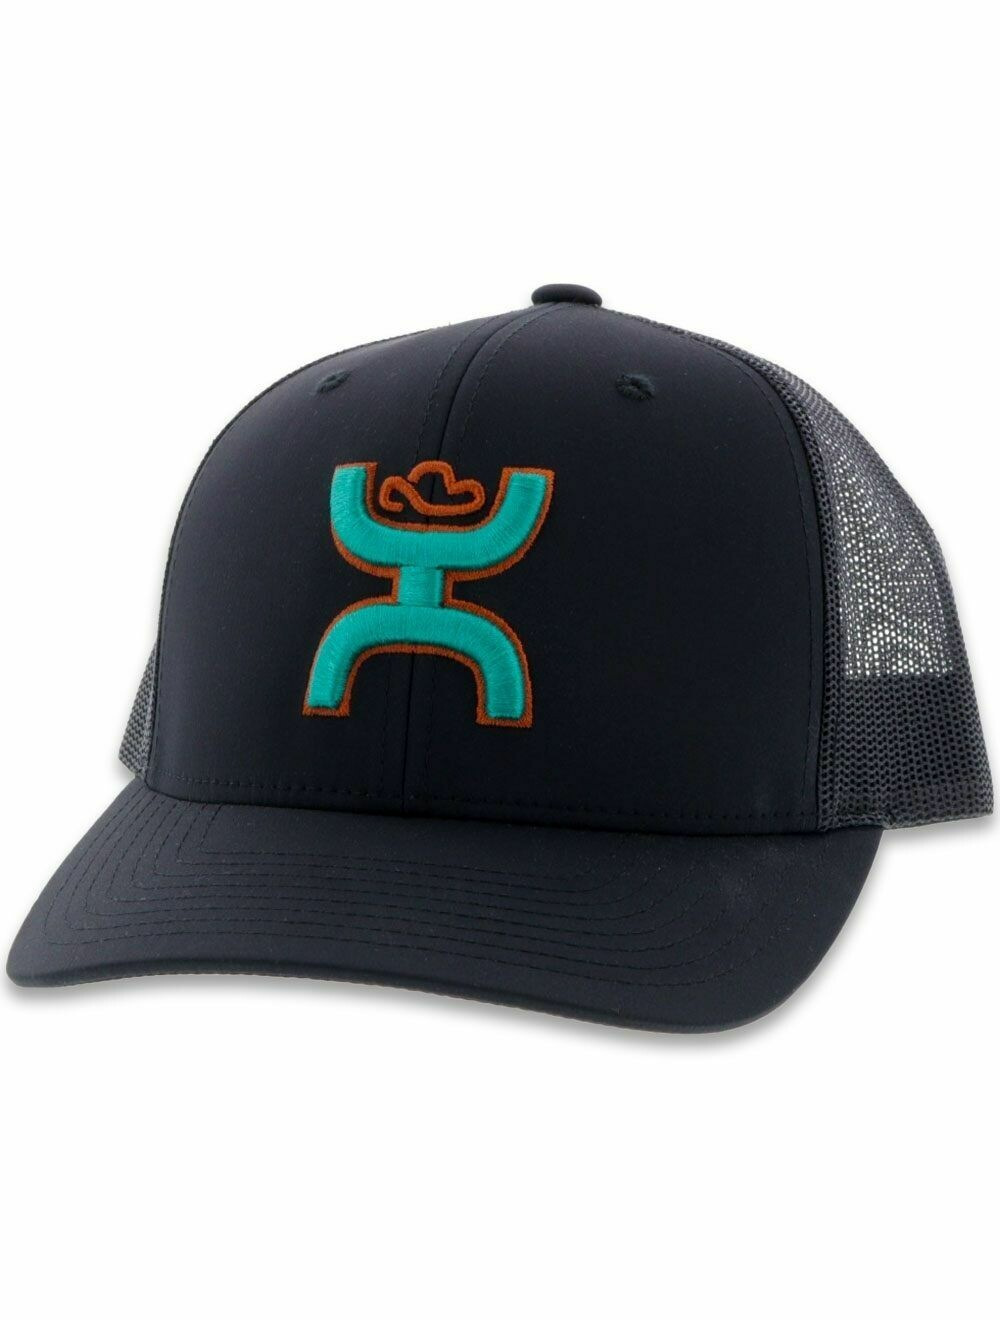 2006T BKGY Sterling Hooey Black 6 Panel Trucker with Turquoise and Orange Logo OSFA